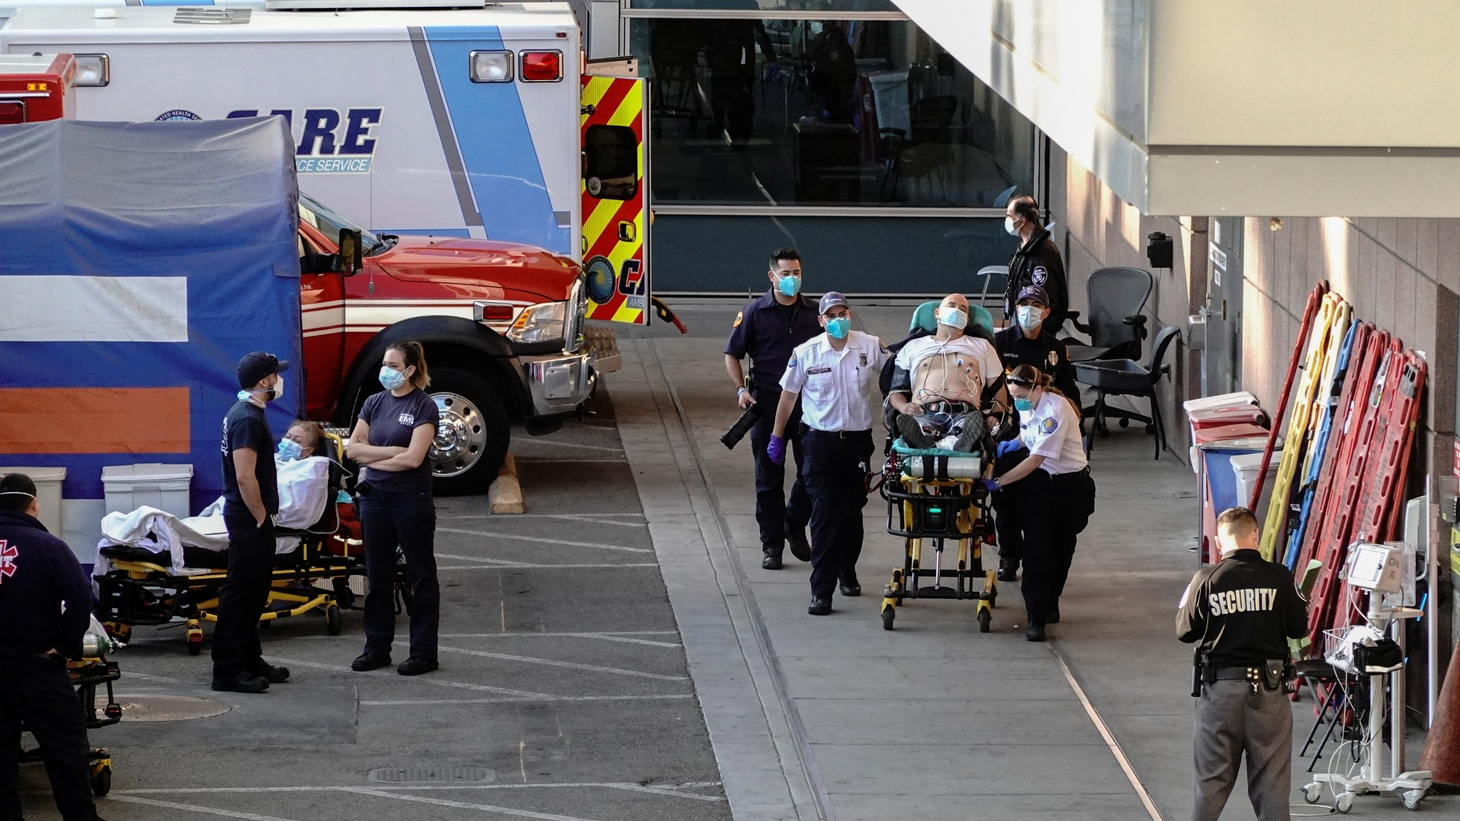 Paramedics escort a patient from the ambulance entrance to the emergency room at LAC + USC Medical Center during a surge of coronavirus disease (COVID-19) cases in Los Angeles, California, U.S., December 27, 2020.